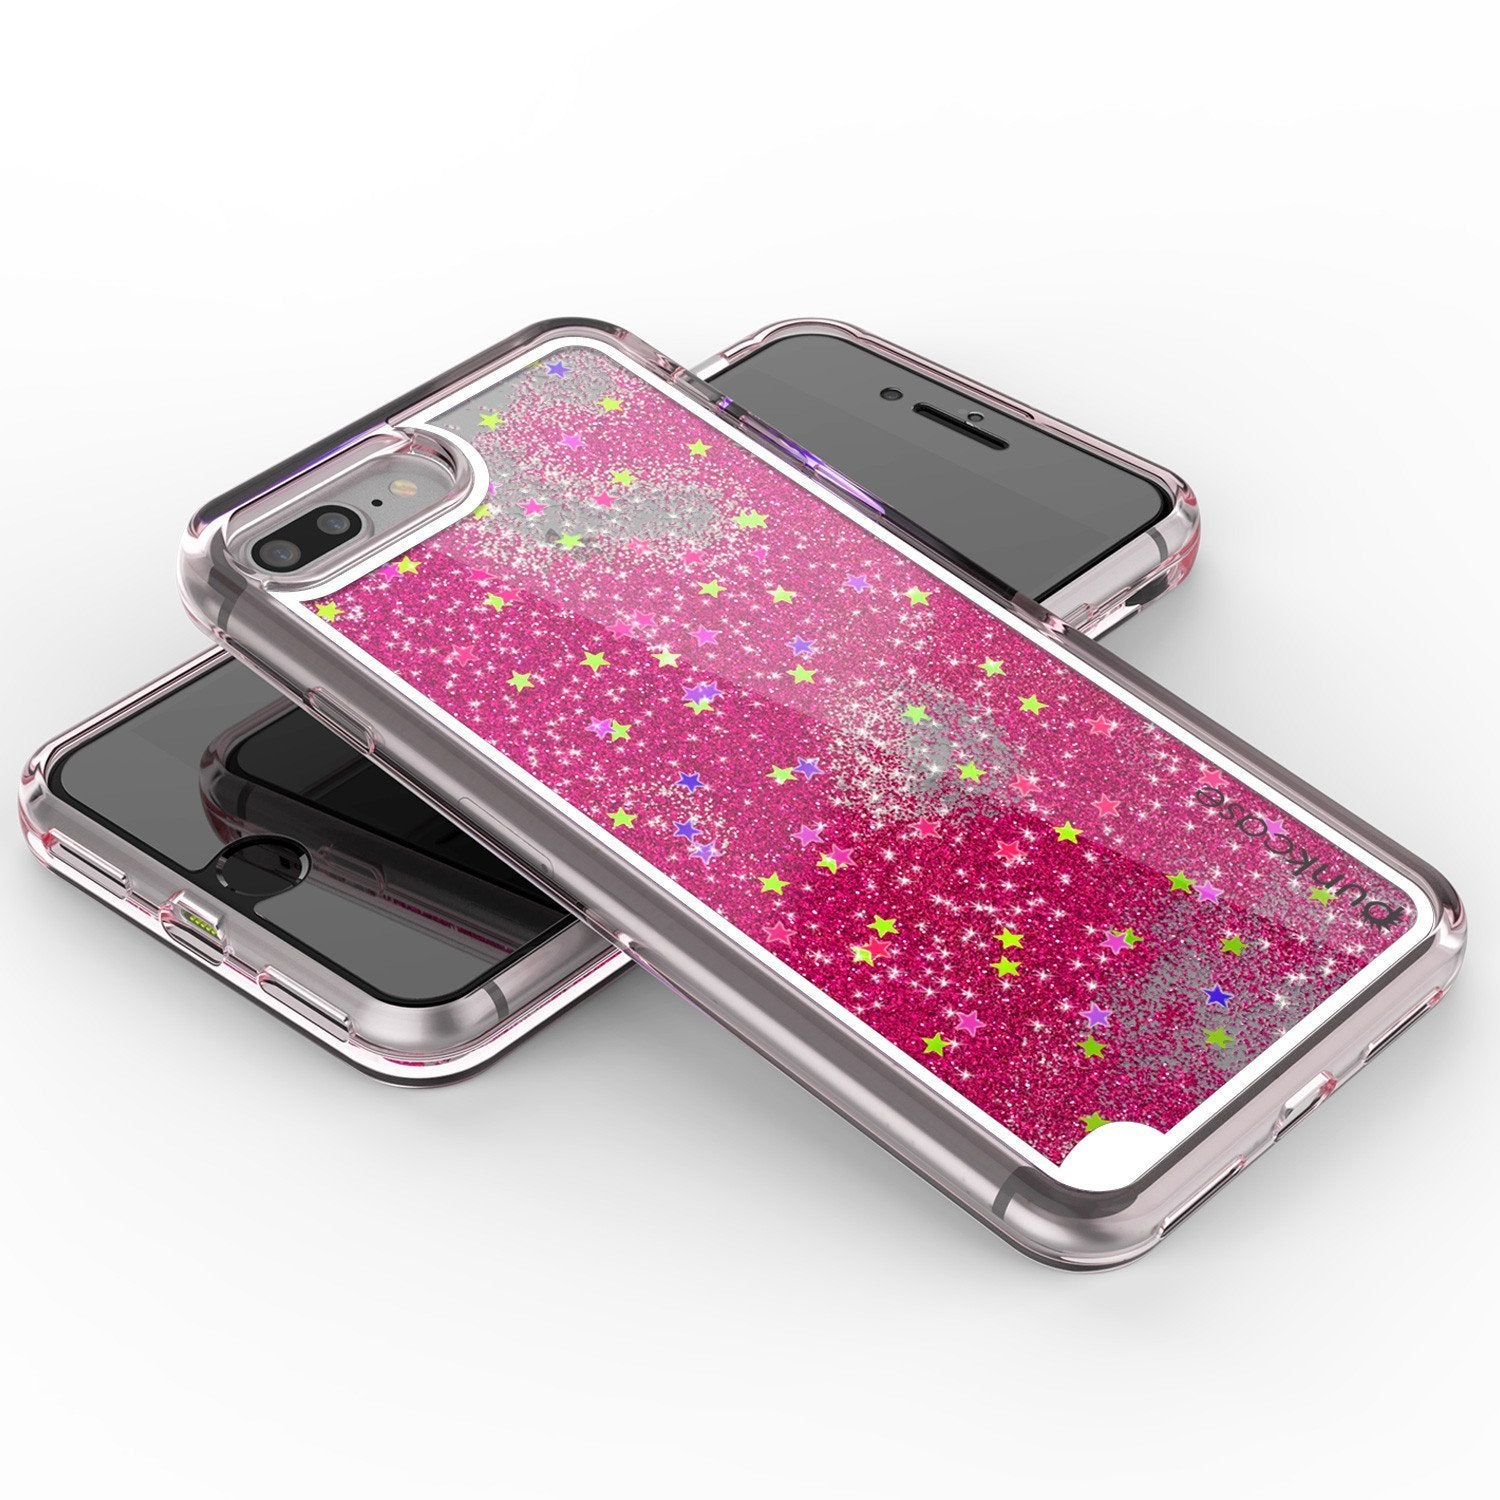 iPhone 8+ Plus Case, Punkcase Liquid Pink, Floating Glitter Cover Series